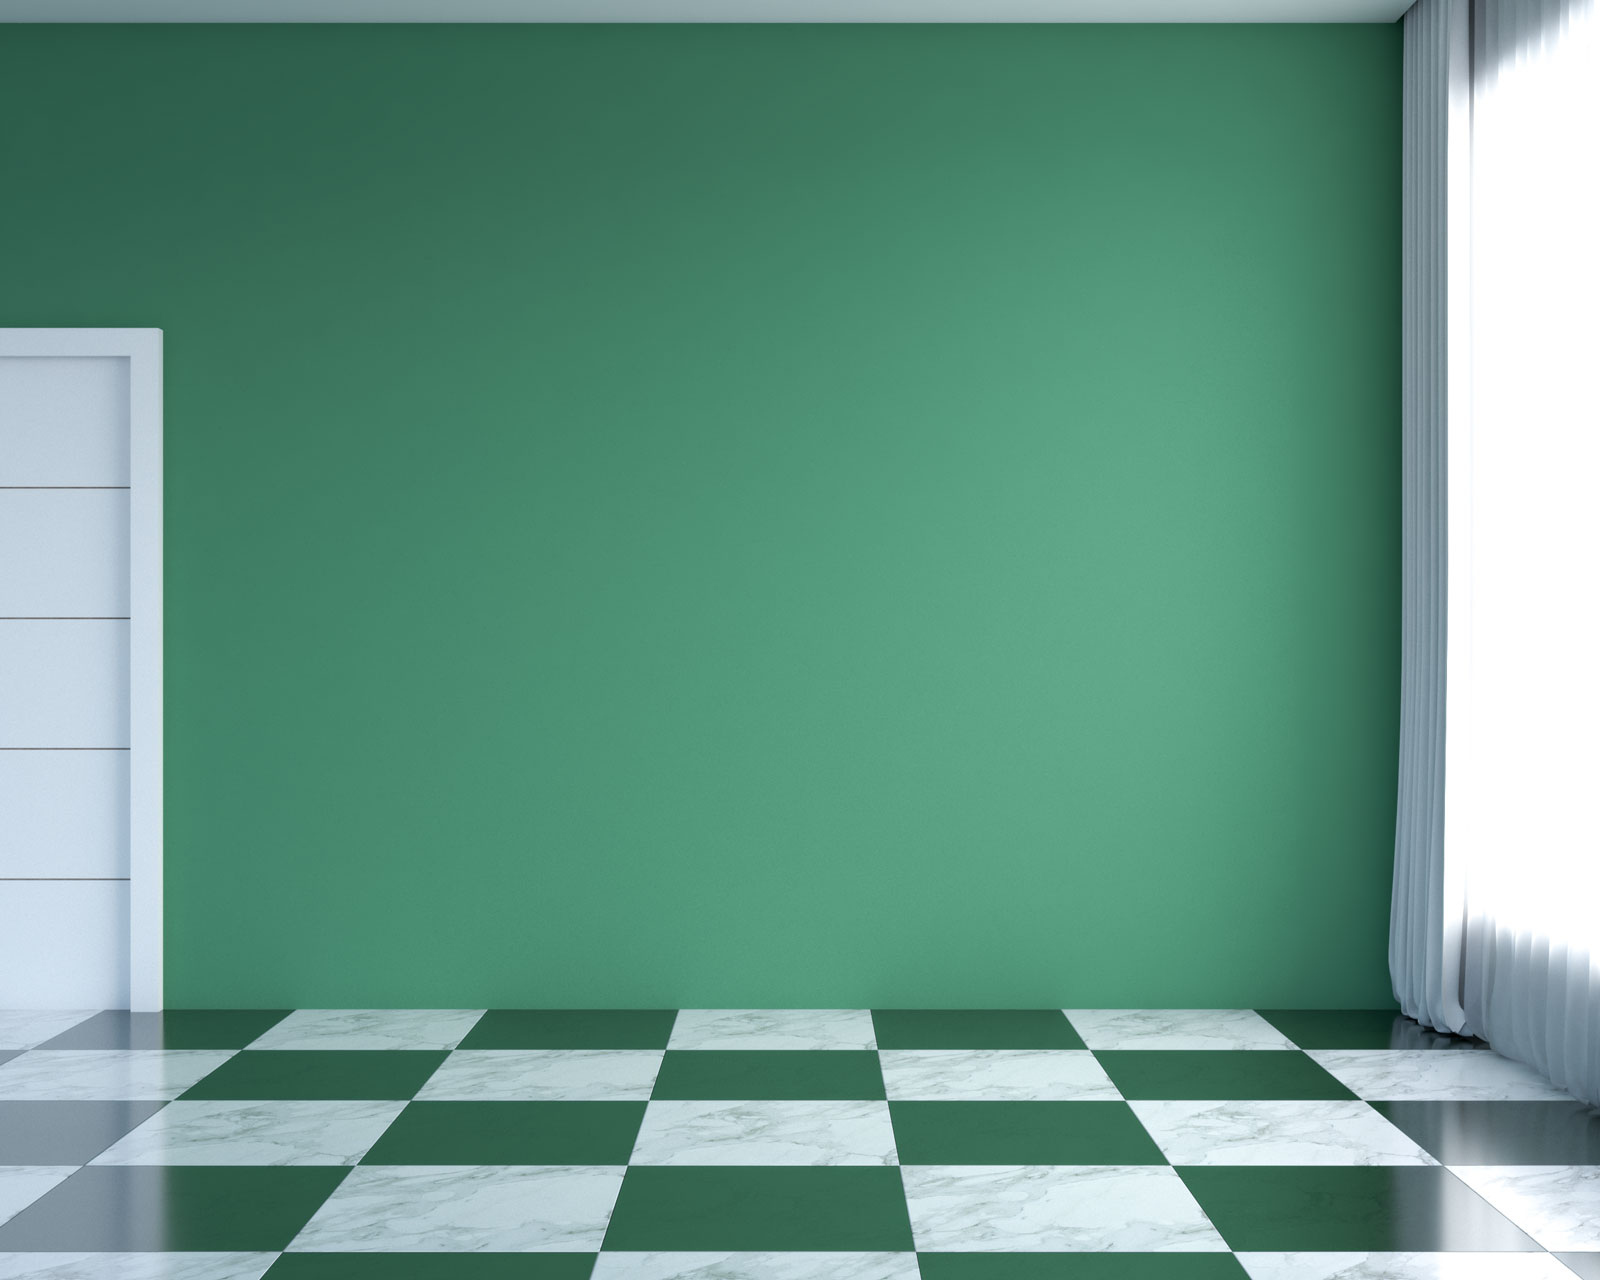 White and green flooring with green walls